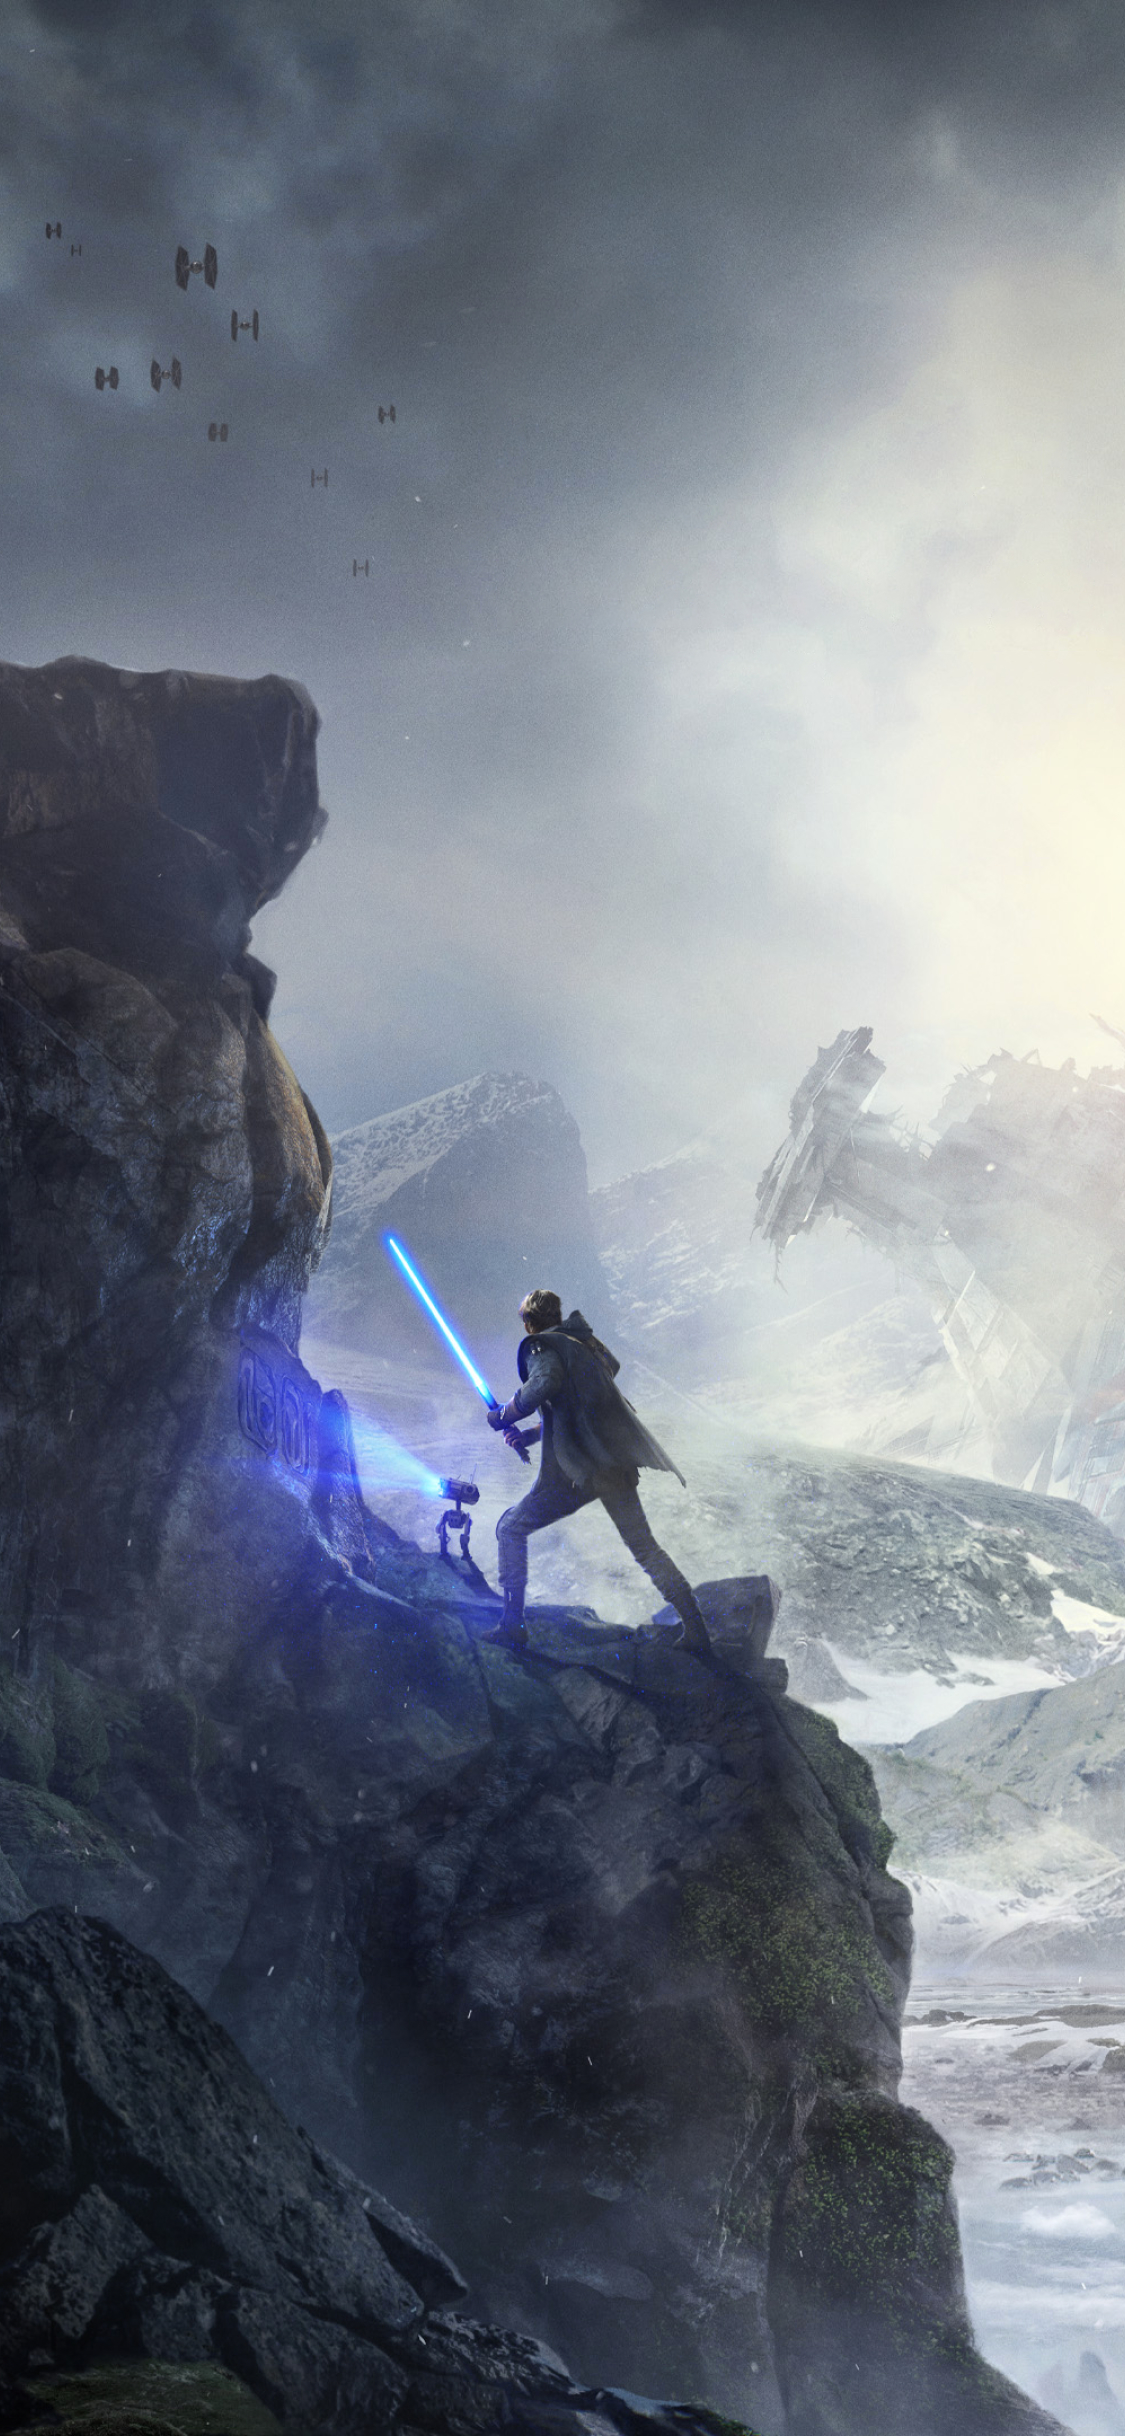 1125x2436 Star Wars Jedi Fallen Order Iphone Xs Iphone 10 Iphone X Wallpaper Hd Games 4k Wallpapers Images Photos And Background